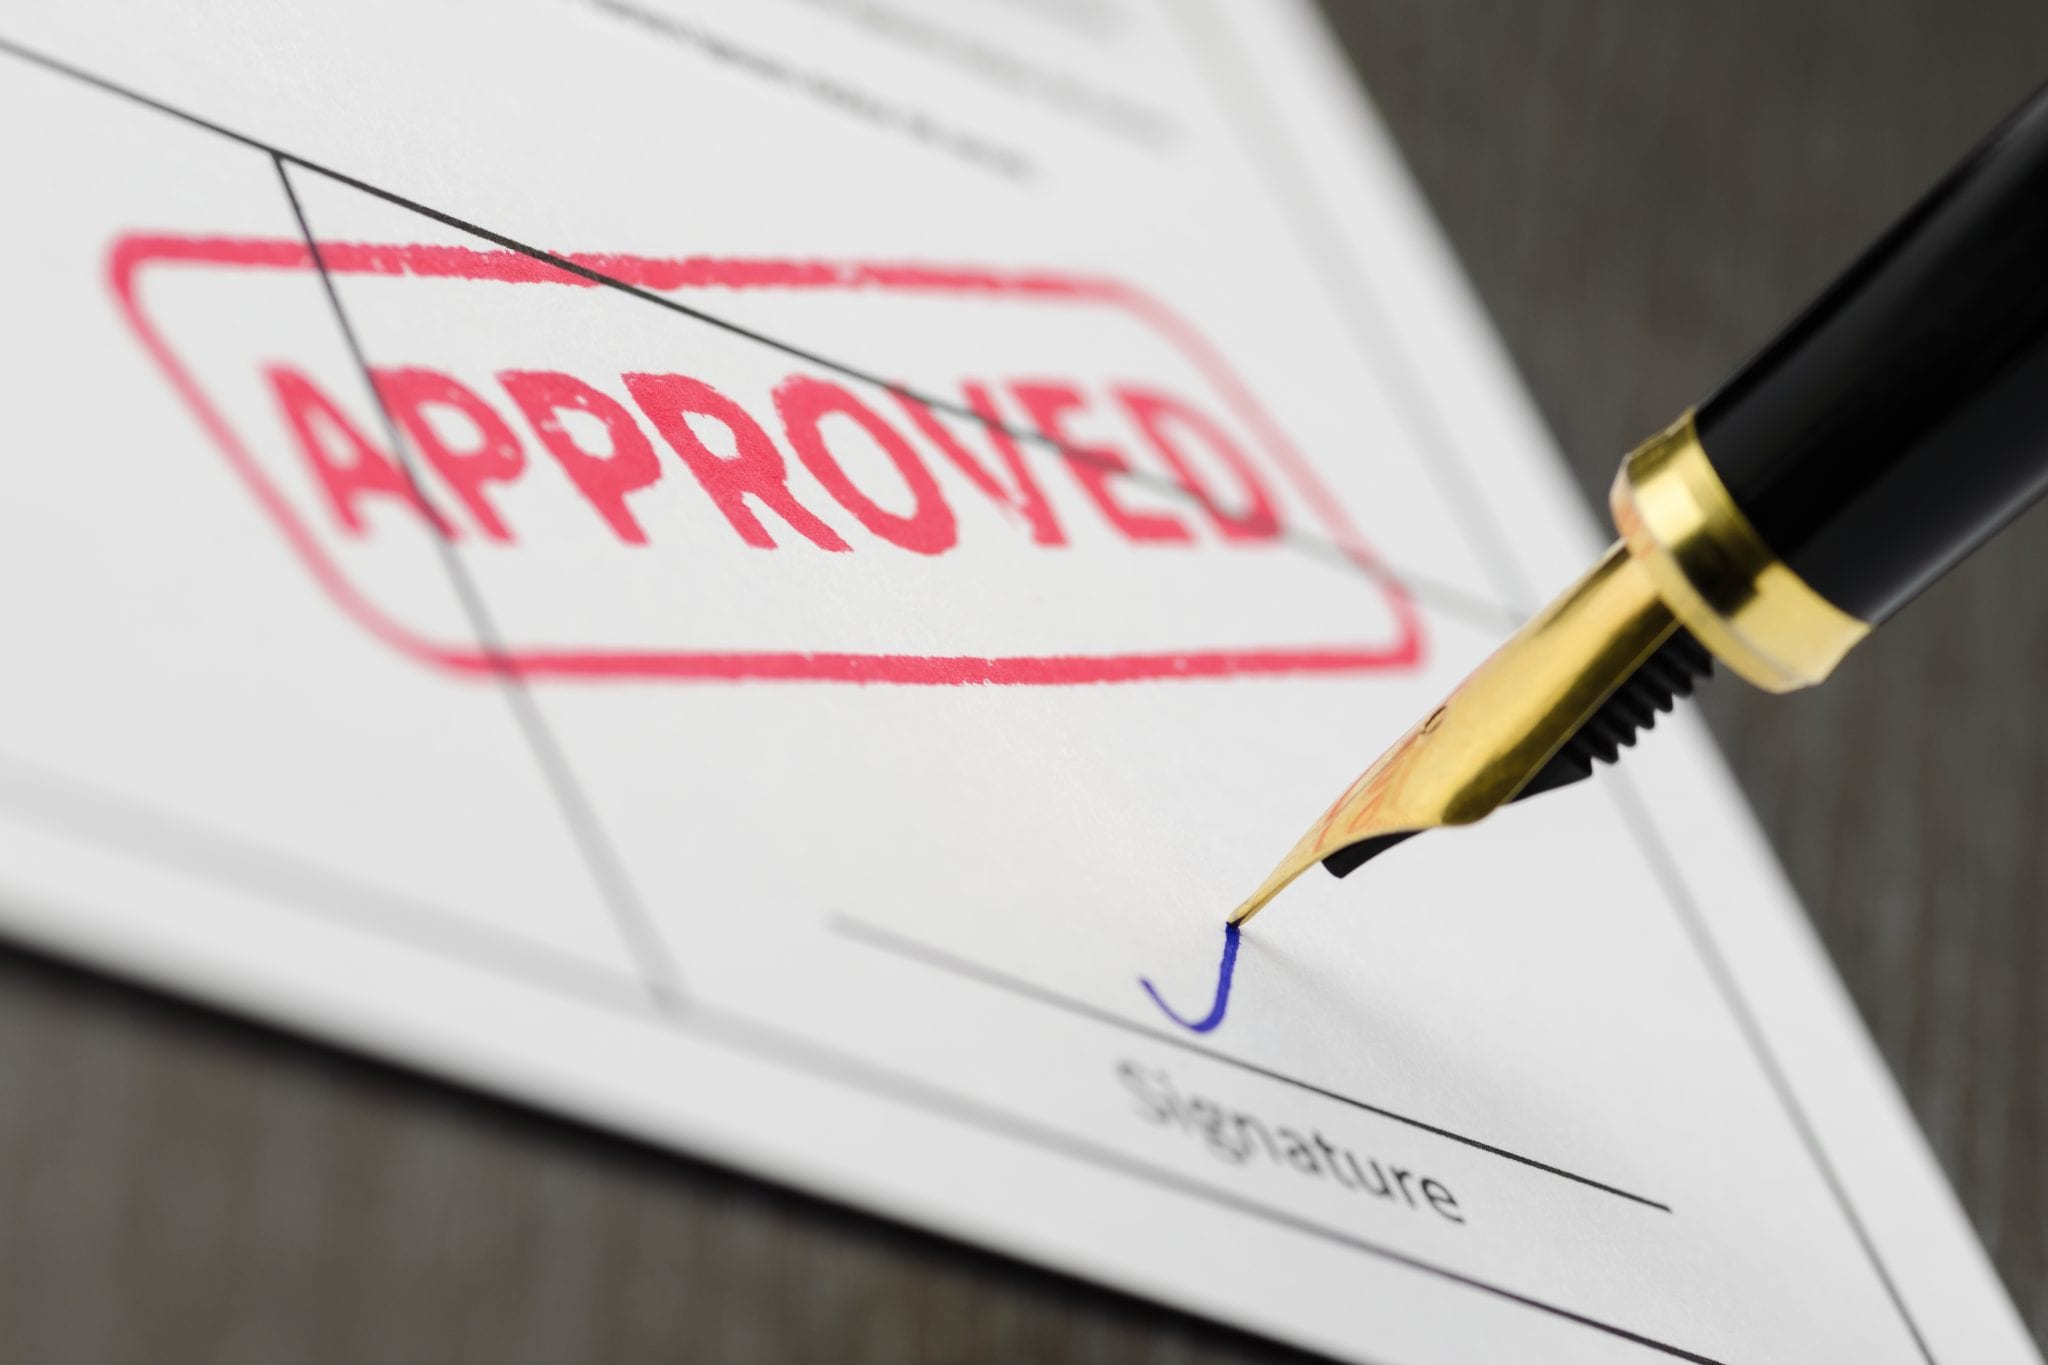 Pen signing paper confirming someone will get approved for a mortgage